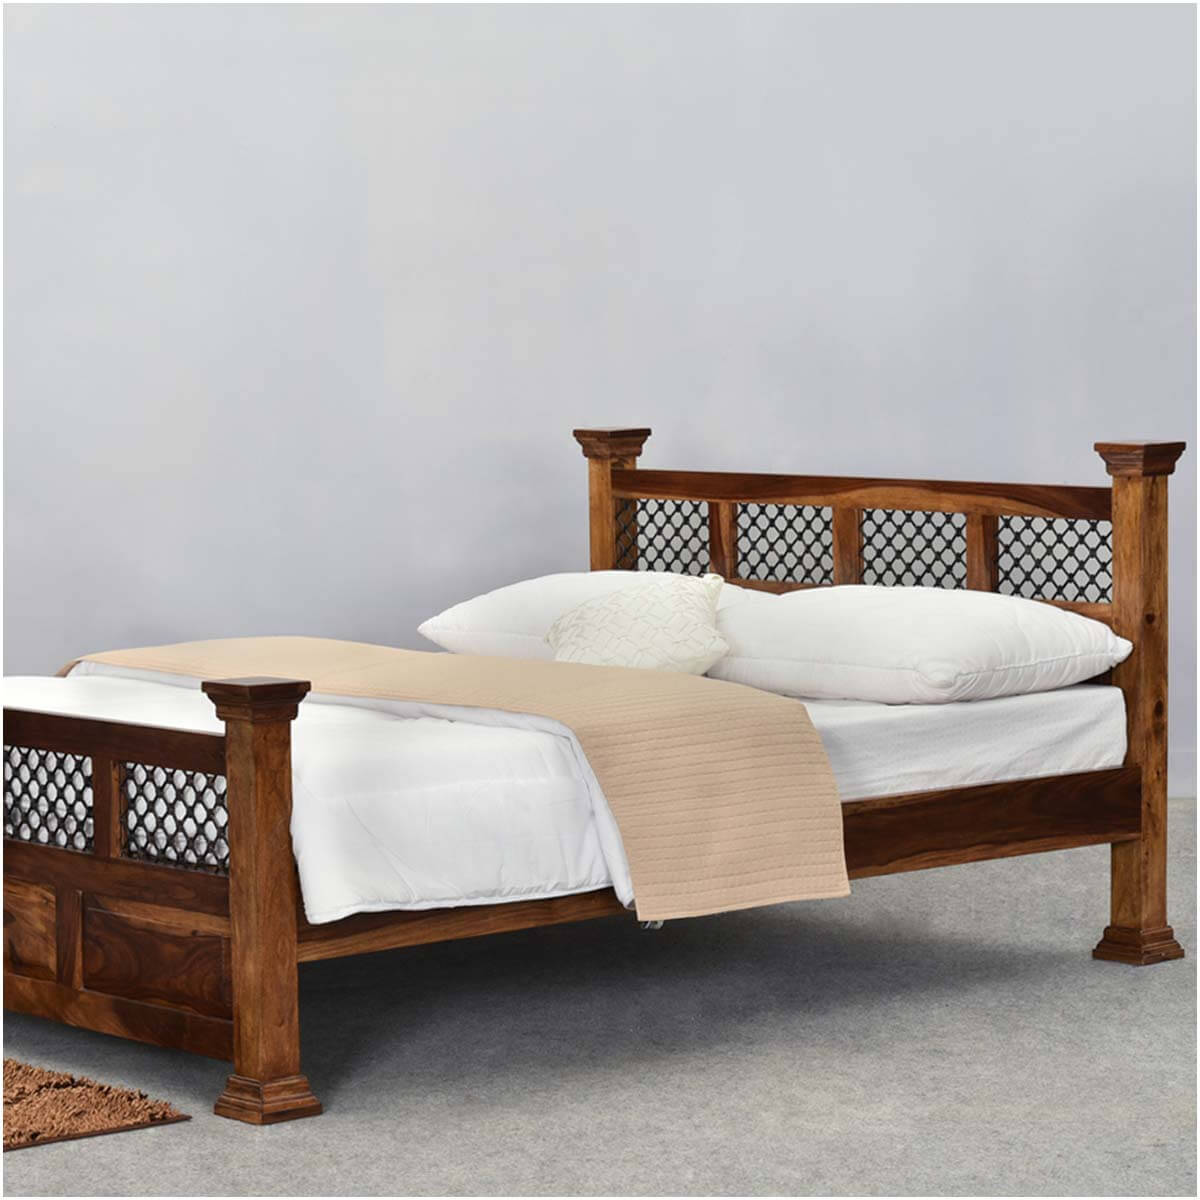 ranch diamond grille rustic solid wood platform bed - dallas ranch diamond grille rustic solid wood platform bed